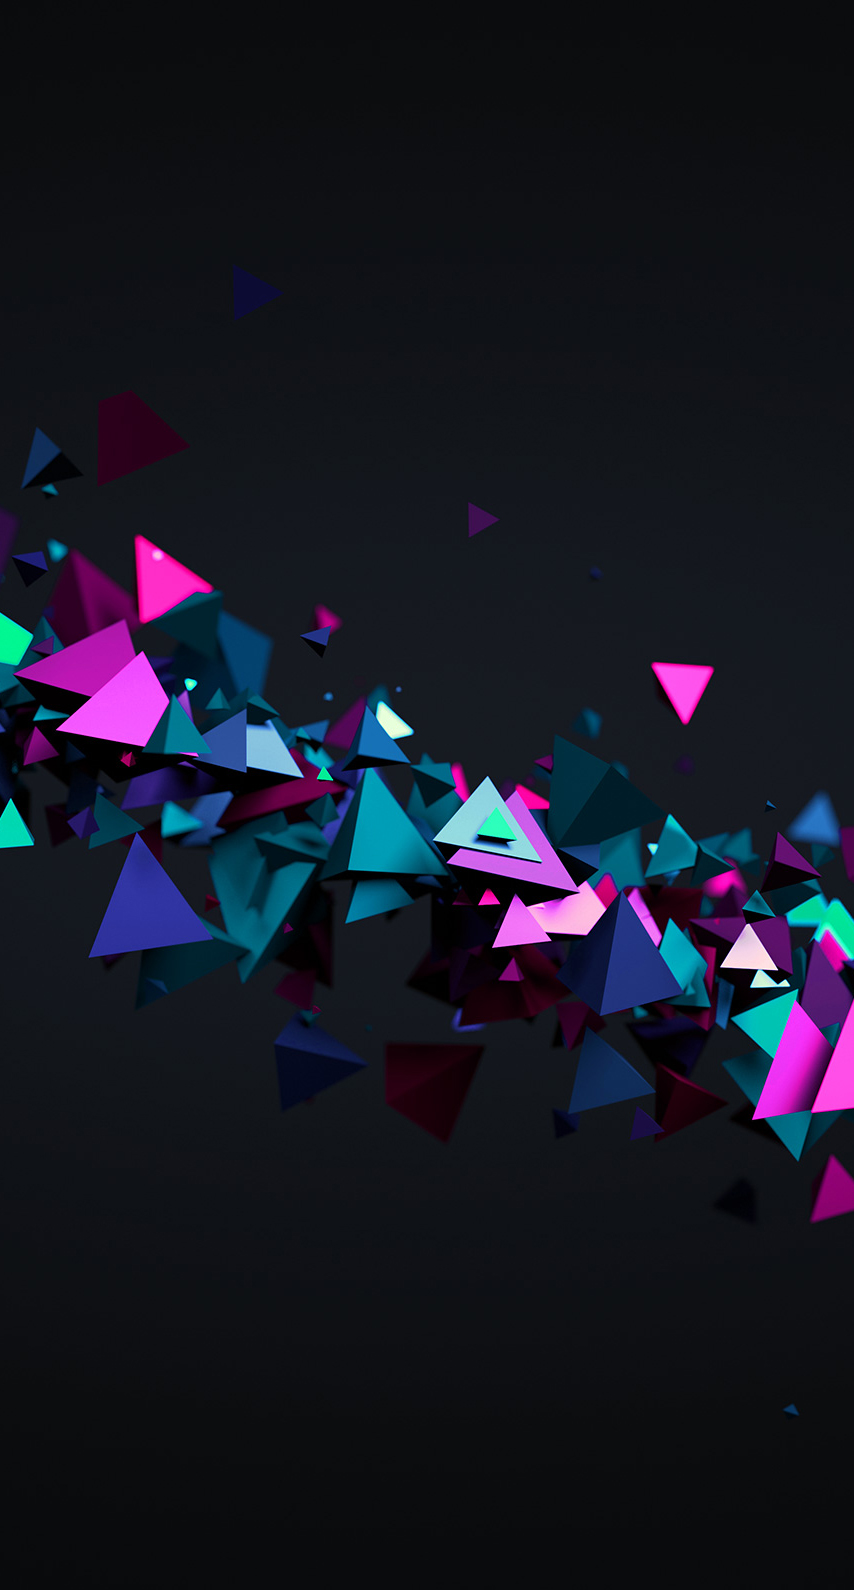 triangles, magenta